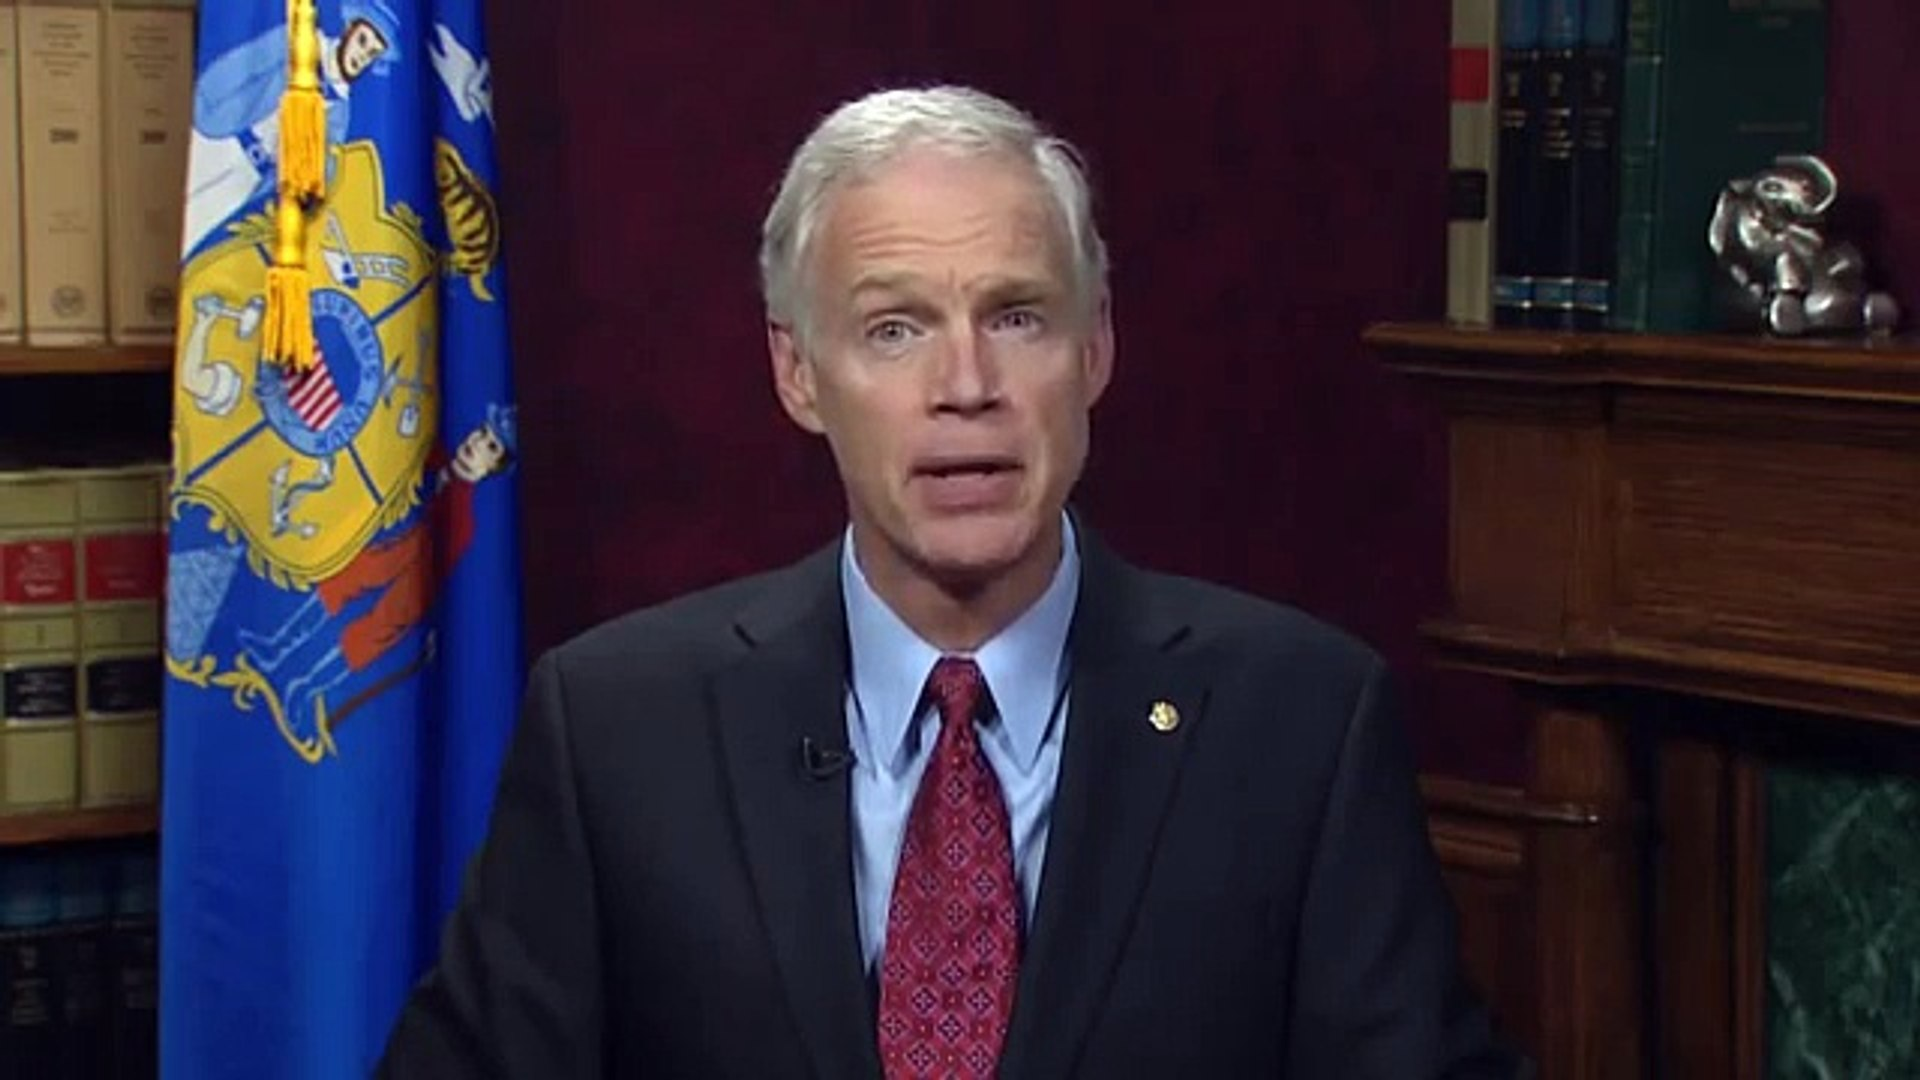 1/29/11 - Sen. Ron Johnson (R-WI) Delivers Weekly GOP Address On Government Blocking Job Creation